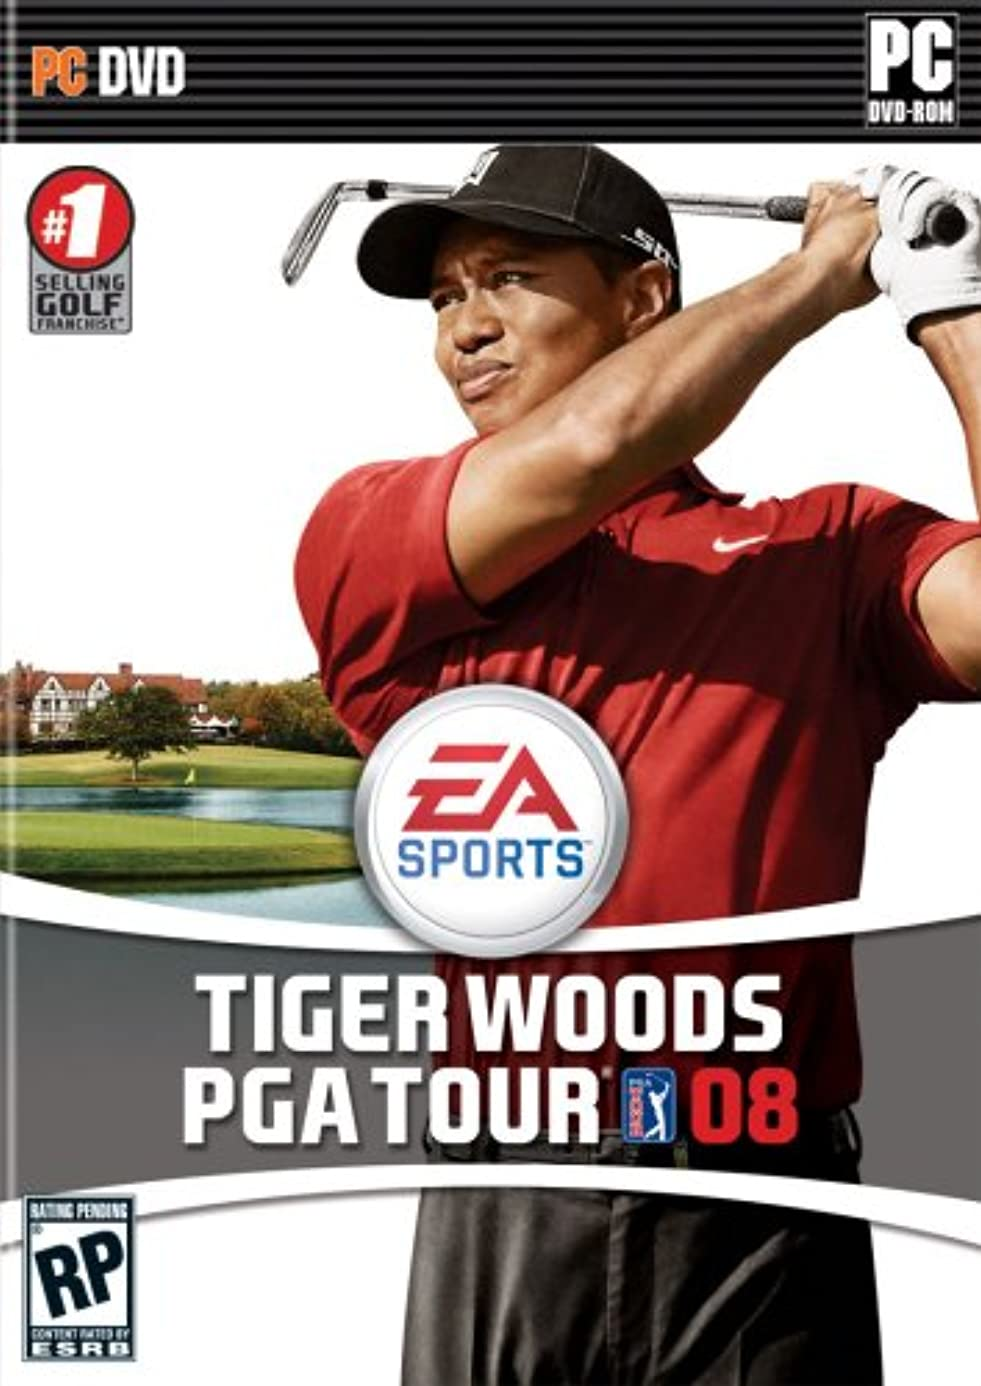 Tiger Woods PGA Tour 08 DVD - PC